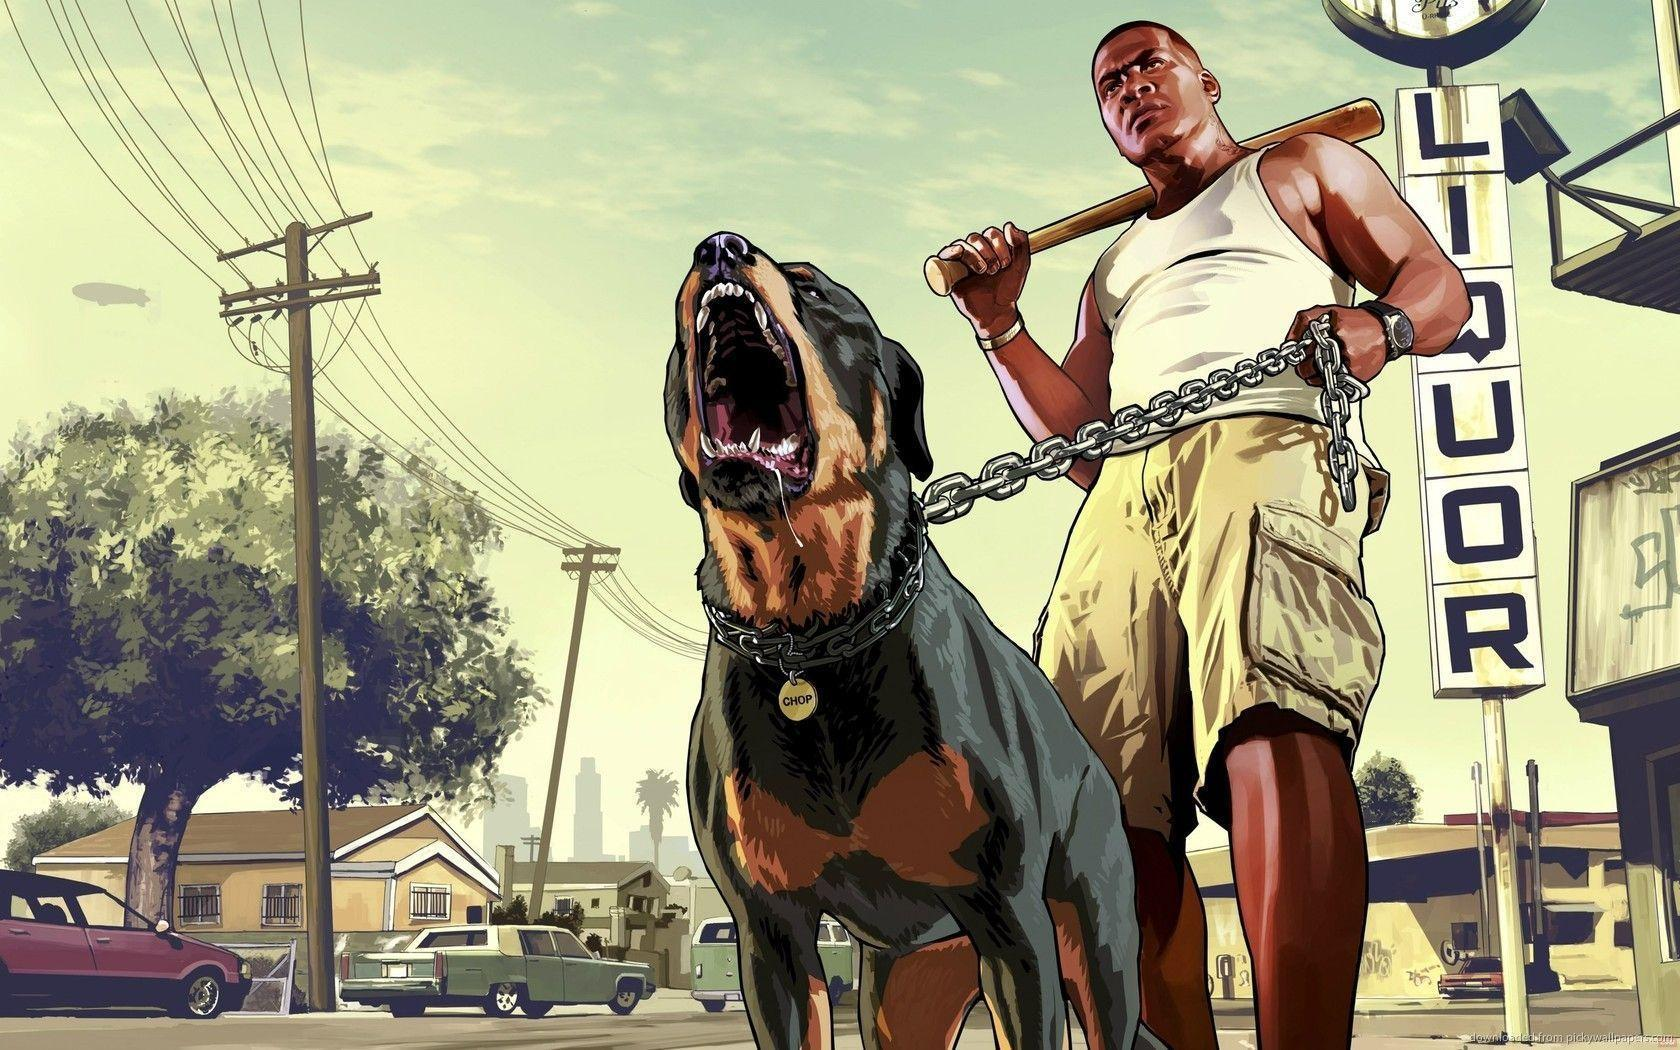 Download 1680x1050 GTA 5 Franklin With A Rottweiler Wallpaper